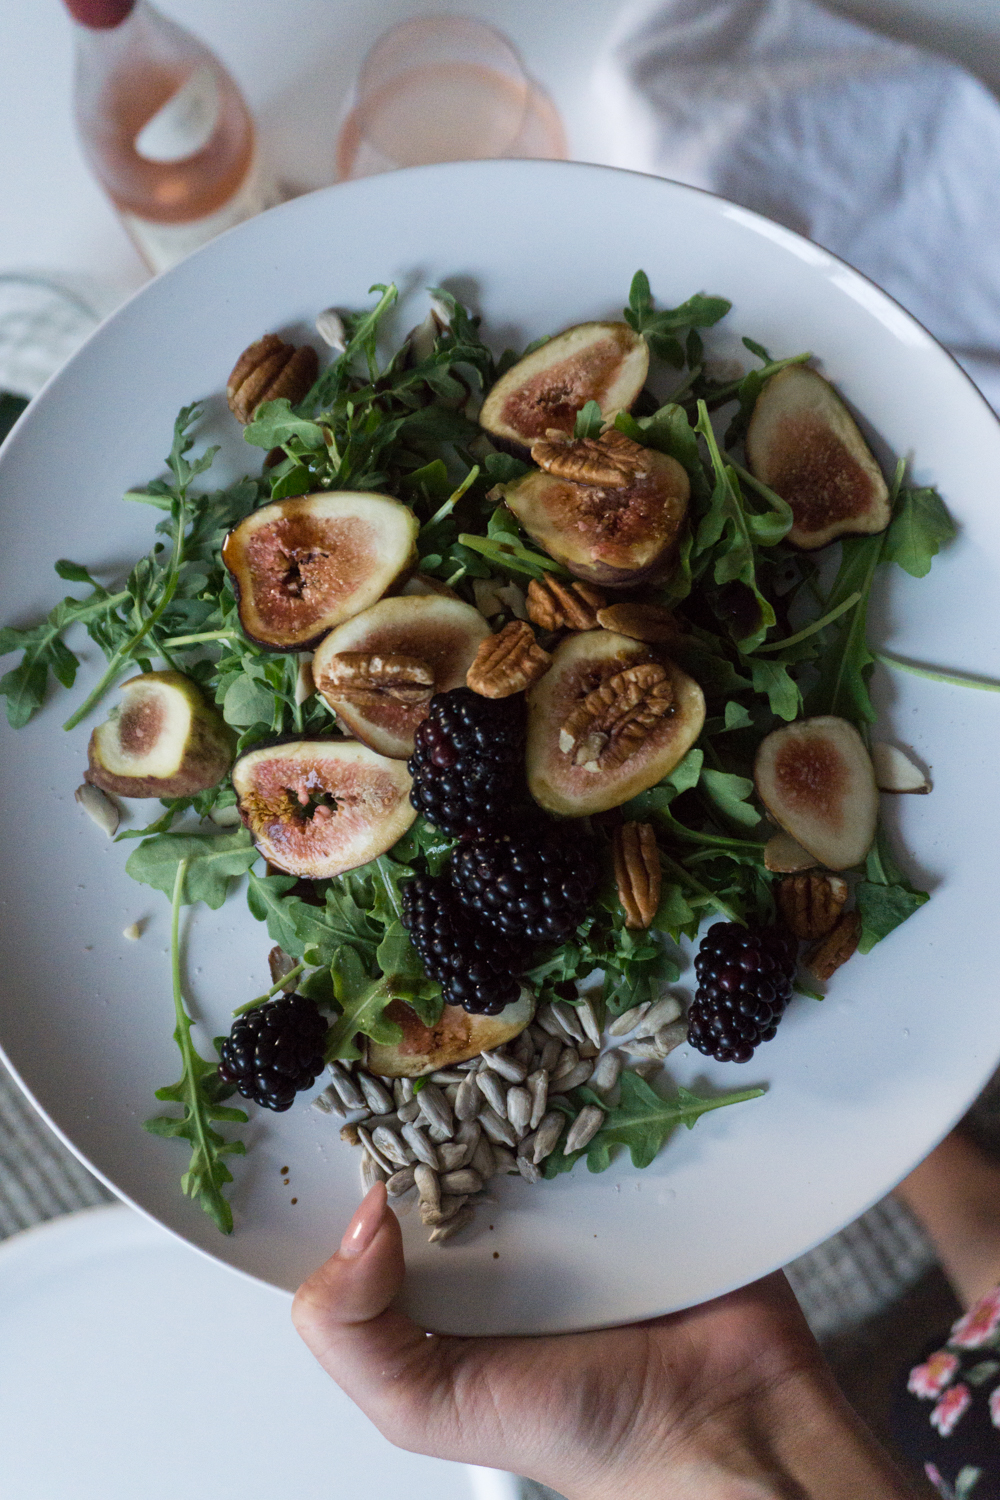 healthy salad recipies arugula fruit diet weight loss tips rgdaily blog